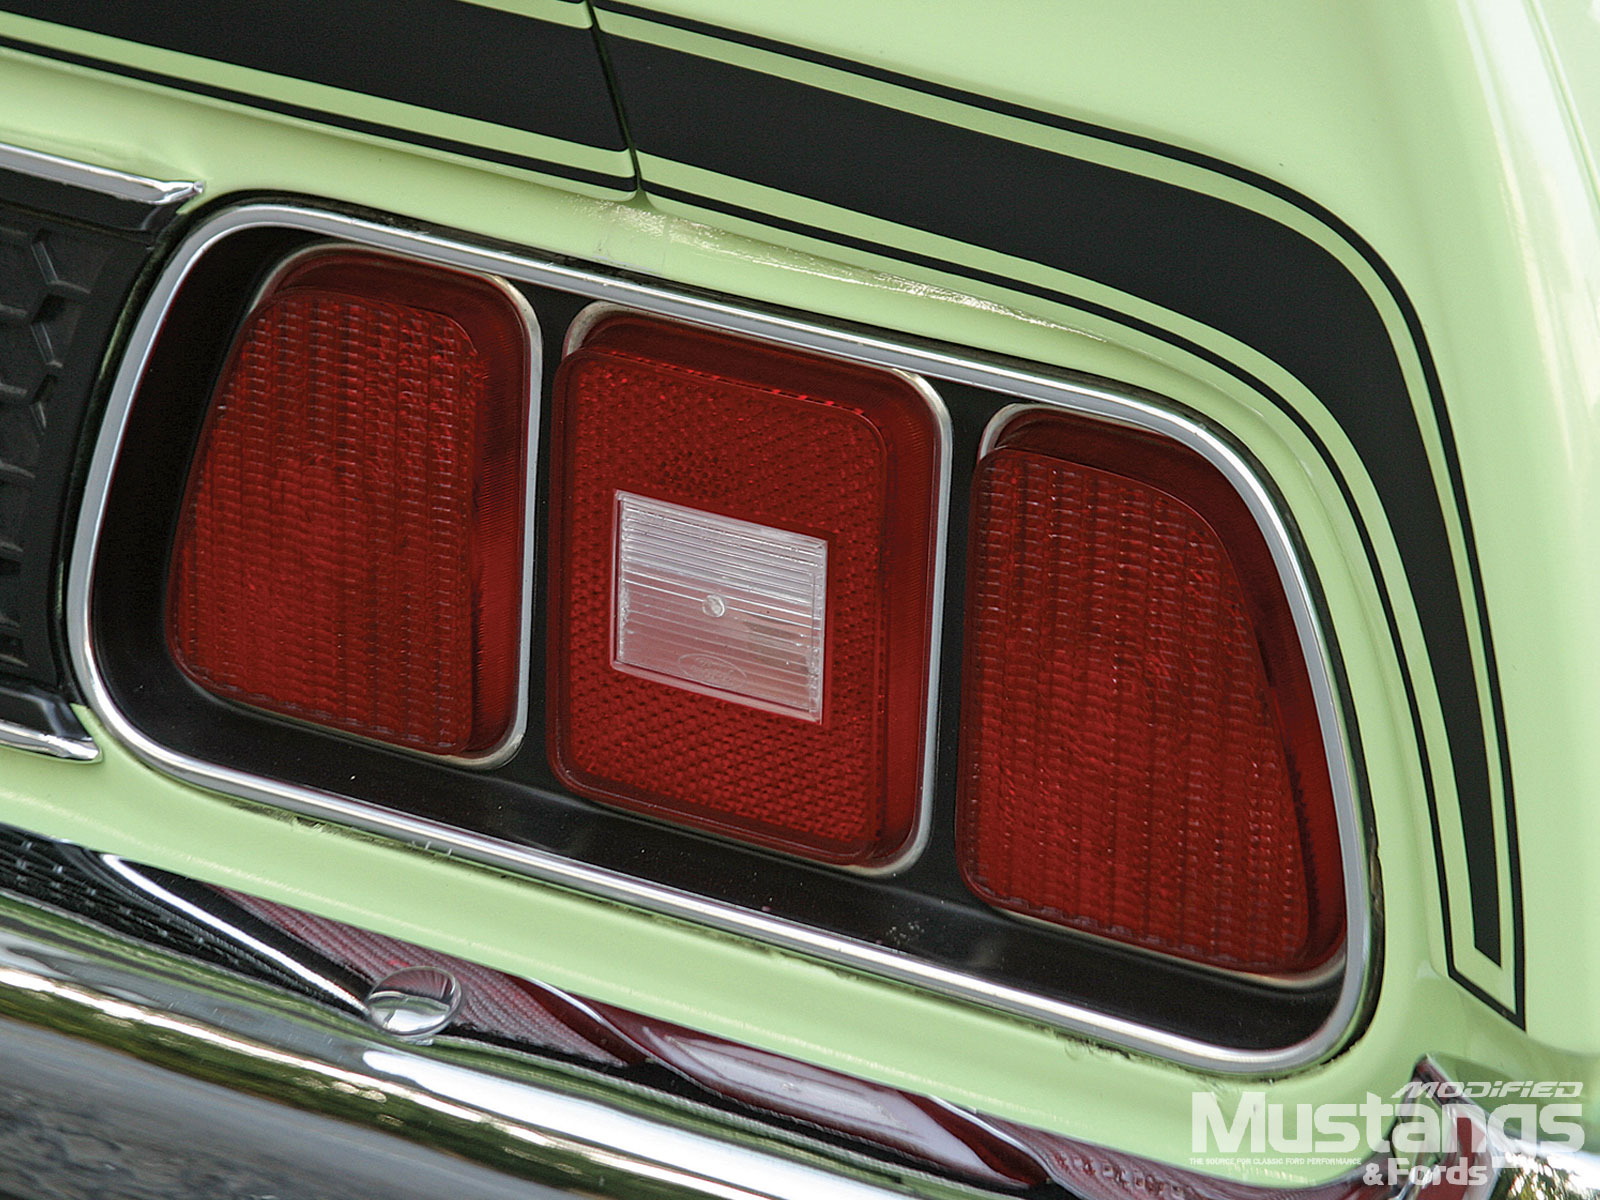 1971 Ford Mustang Mach 1 Back Headlights